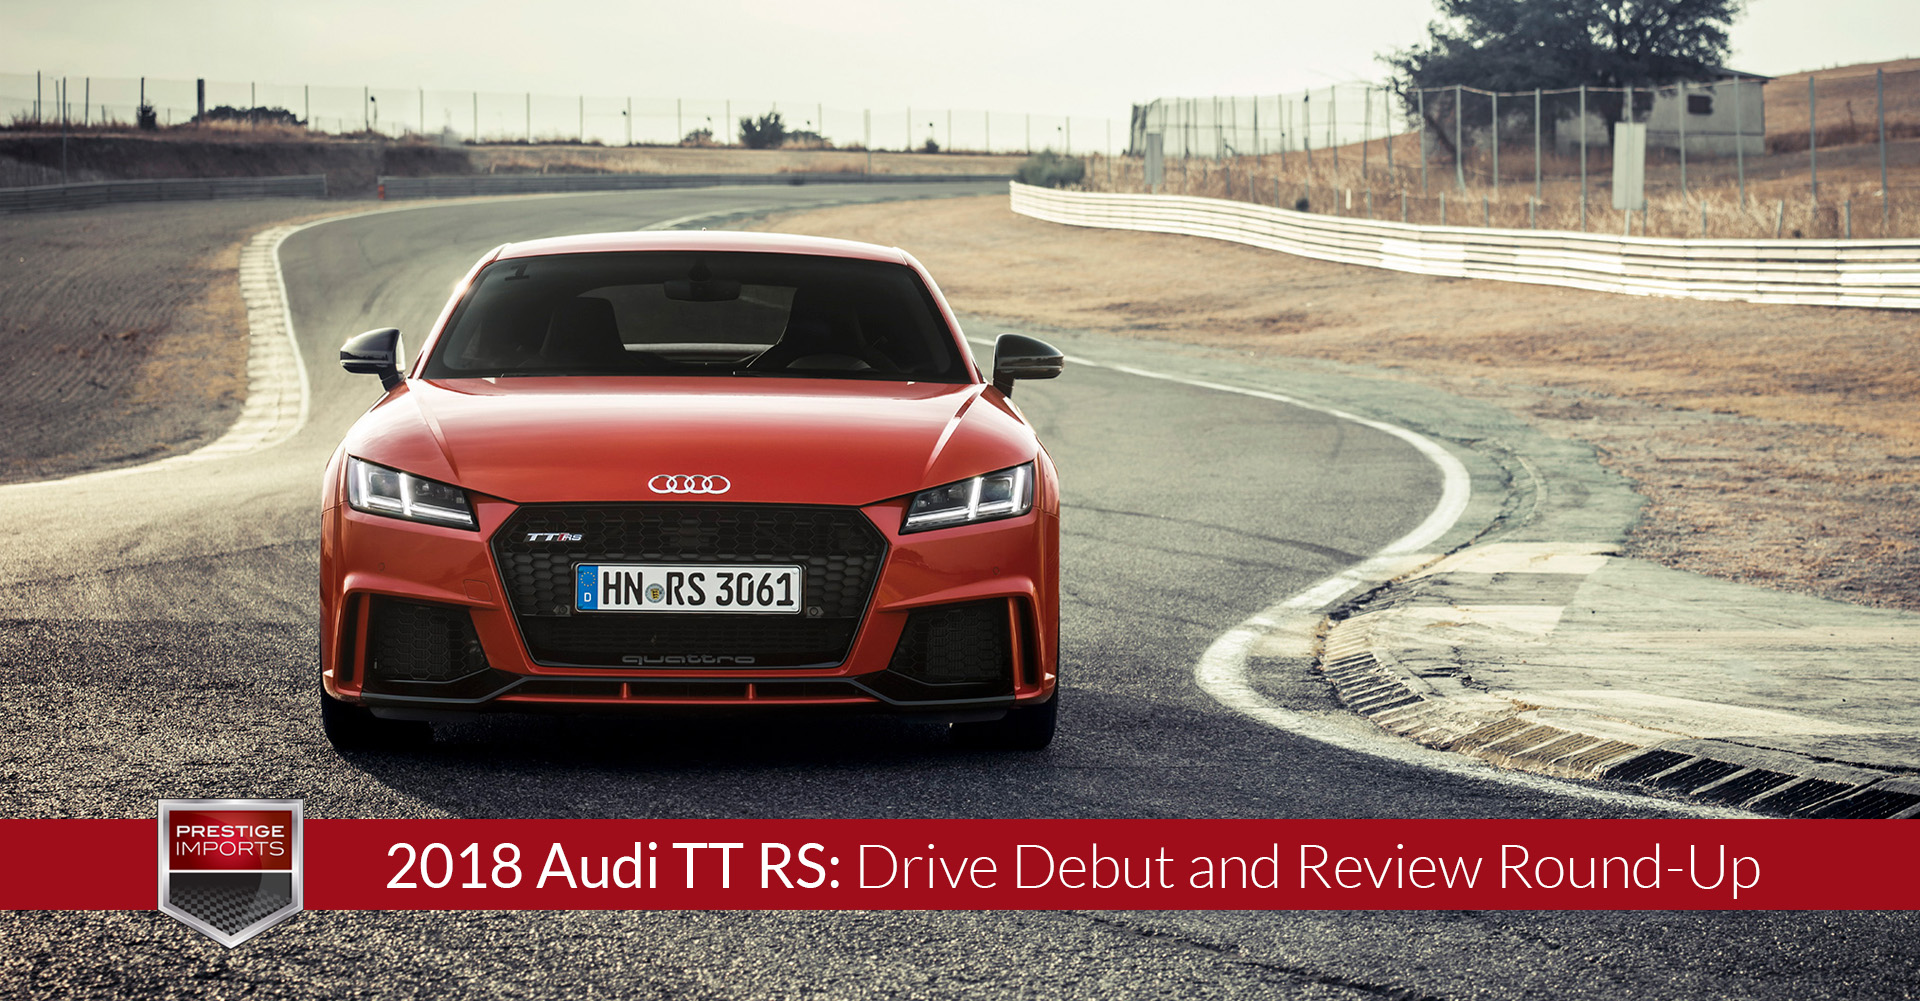 2018 Audi Tt Rs Drive Debut And Review Round Up